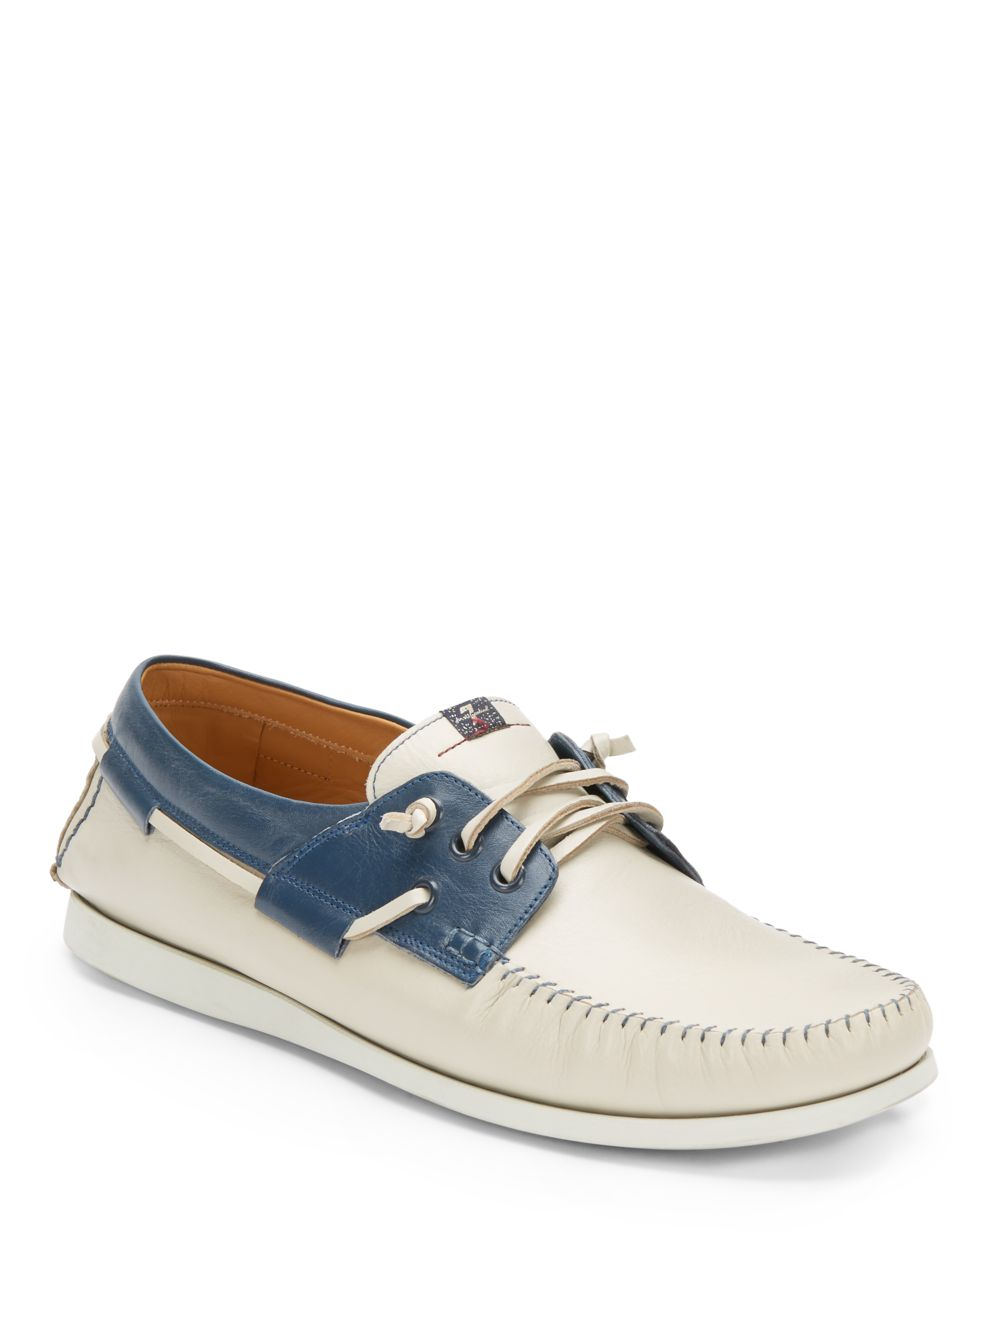 7 for all mankind white and blue leather moc toe harry